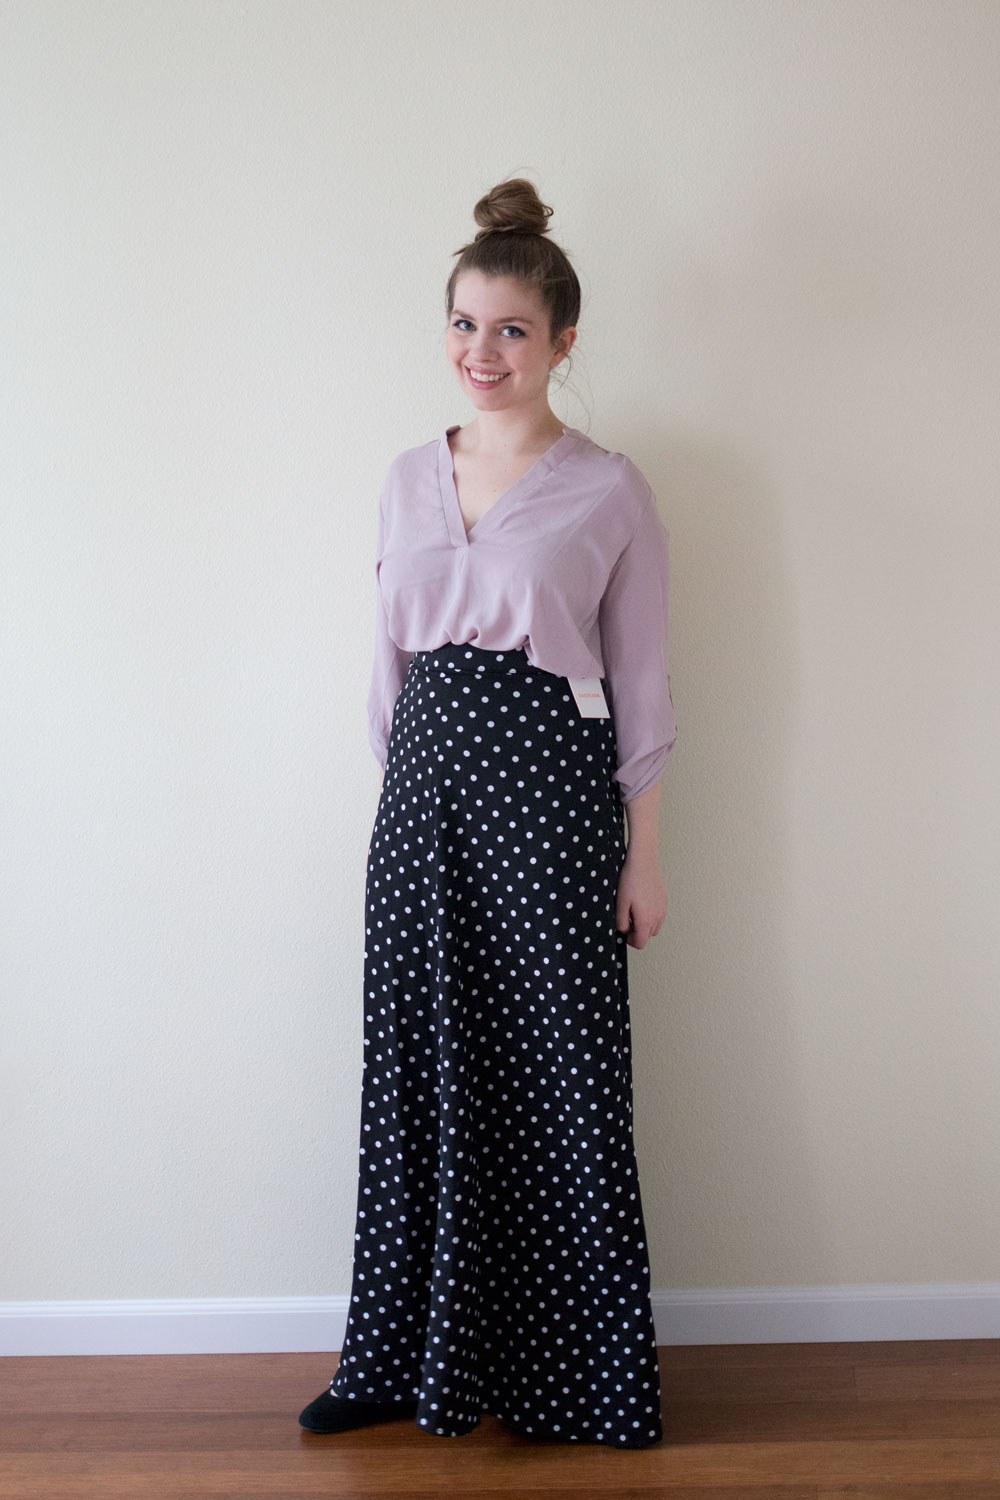 DailyLook Polka Dot Maxi Skirt / DailyLook Elite Box April 2015 Review & Styling / hellorigby seattle fashion and lifestyle blog